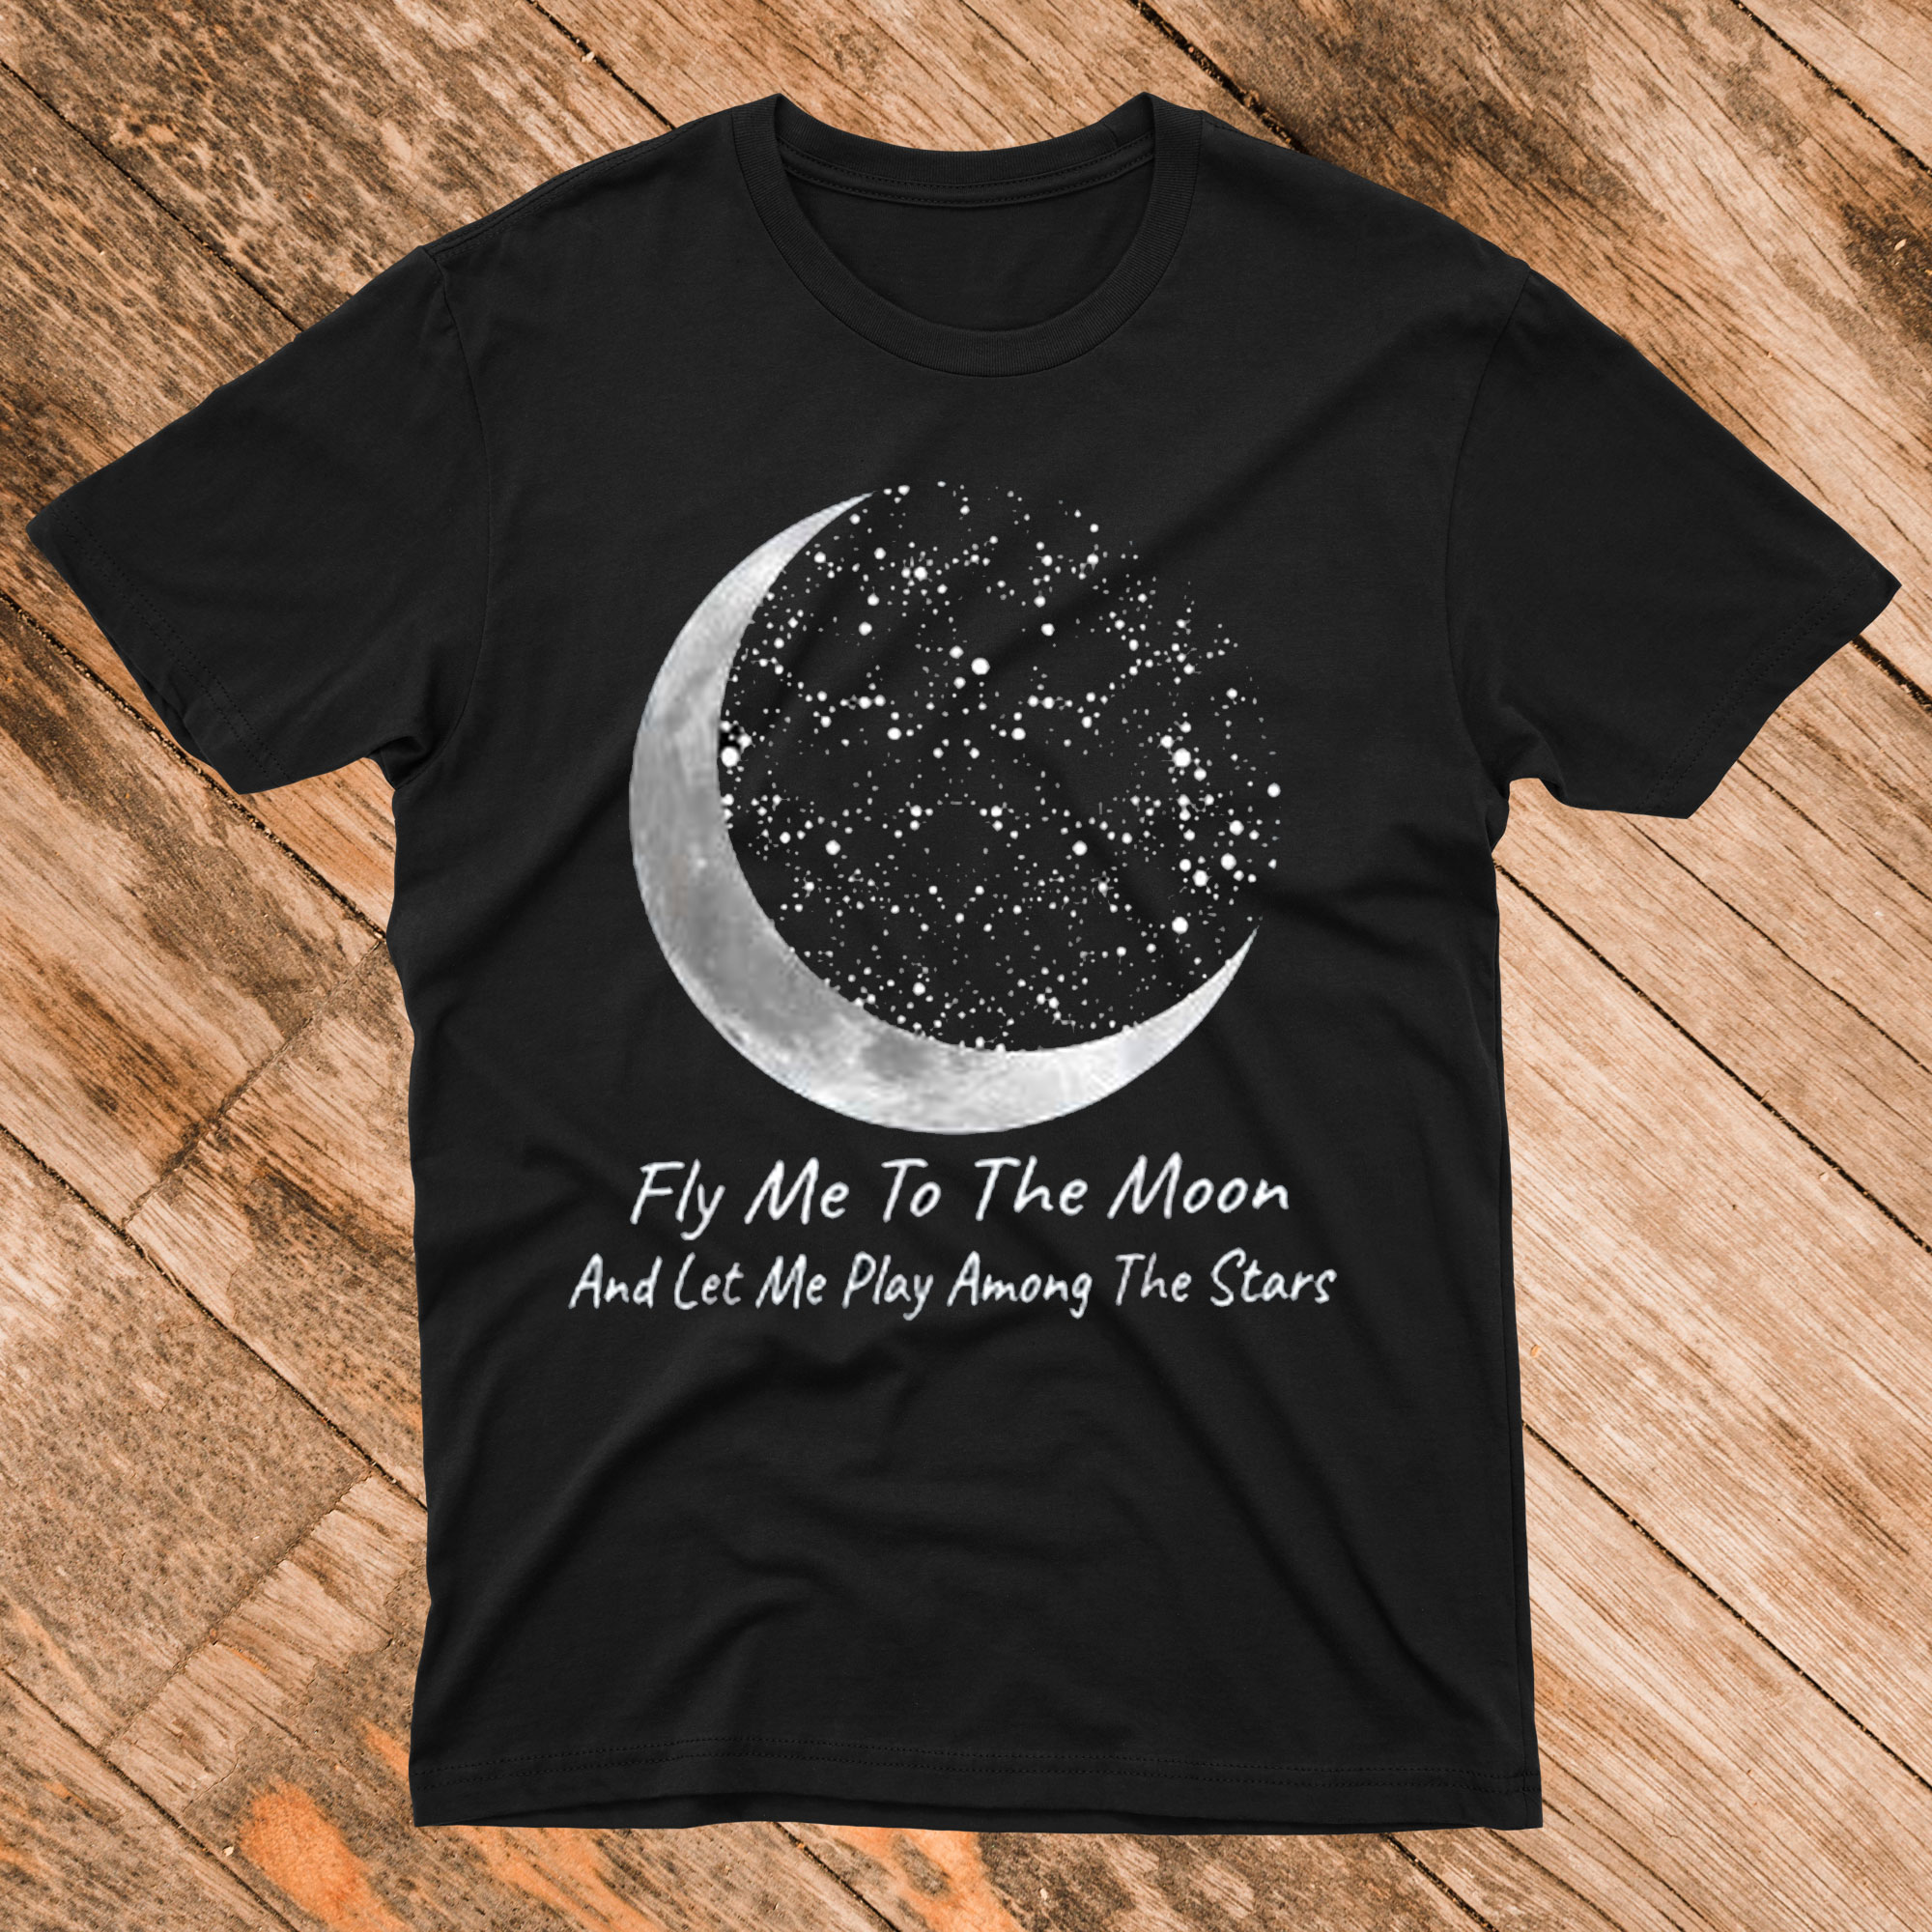 Fly Me To The Moon Awesome T Shirt Unisex Tshirt